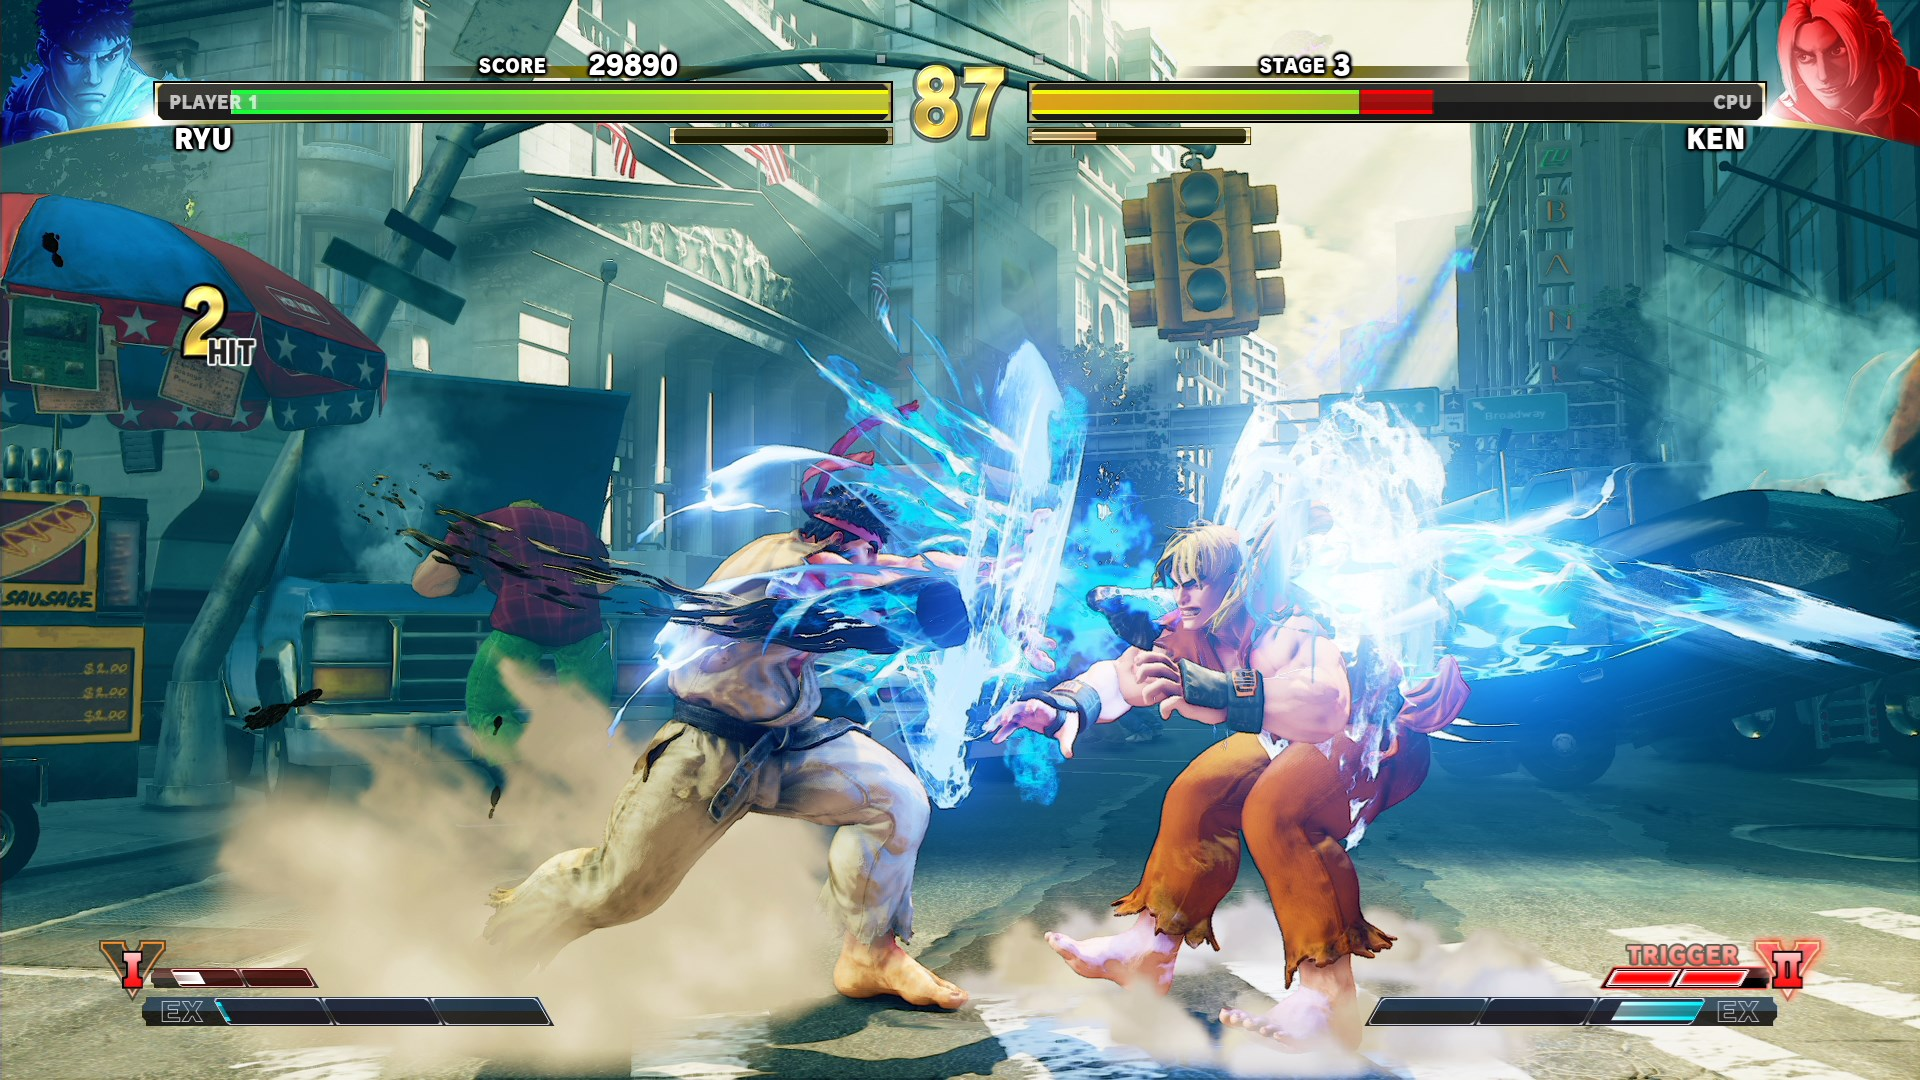 Street Fighter V players upgraded to the Arcade Edition